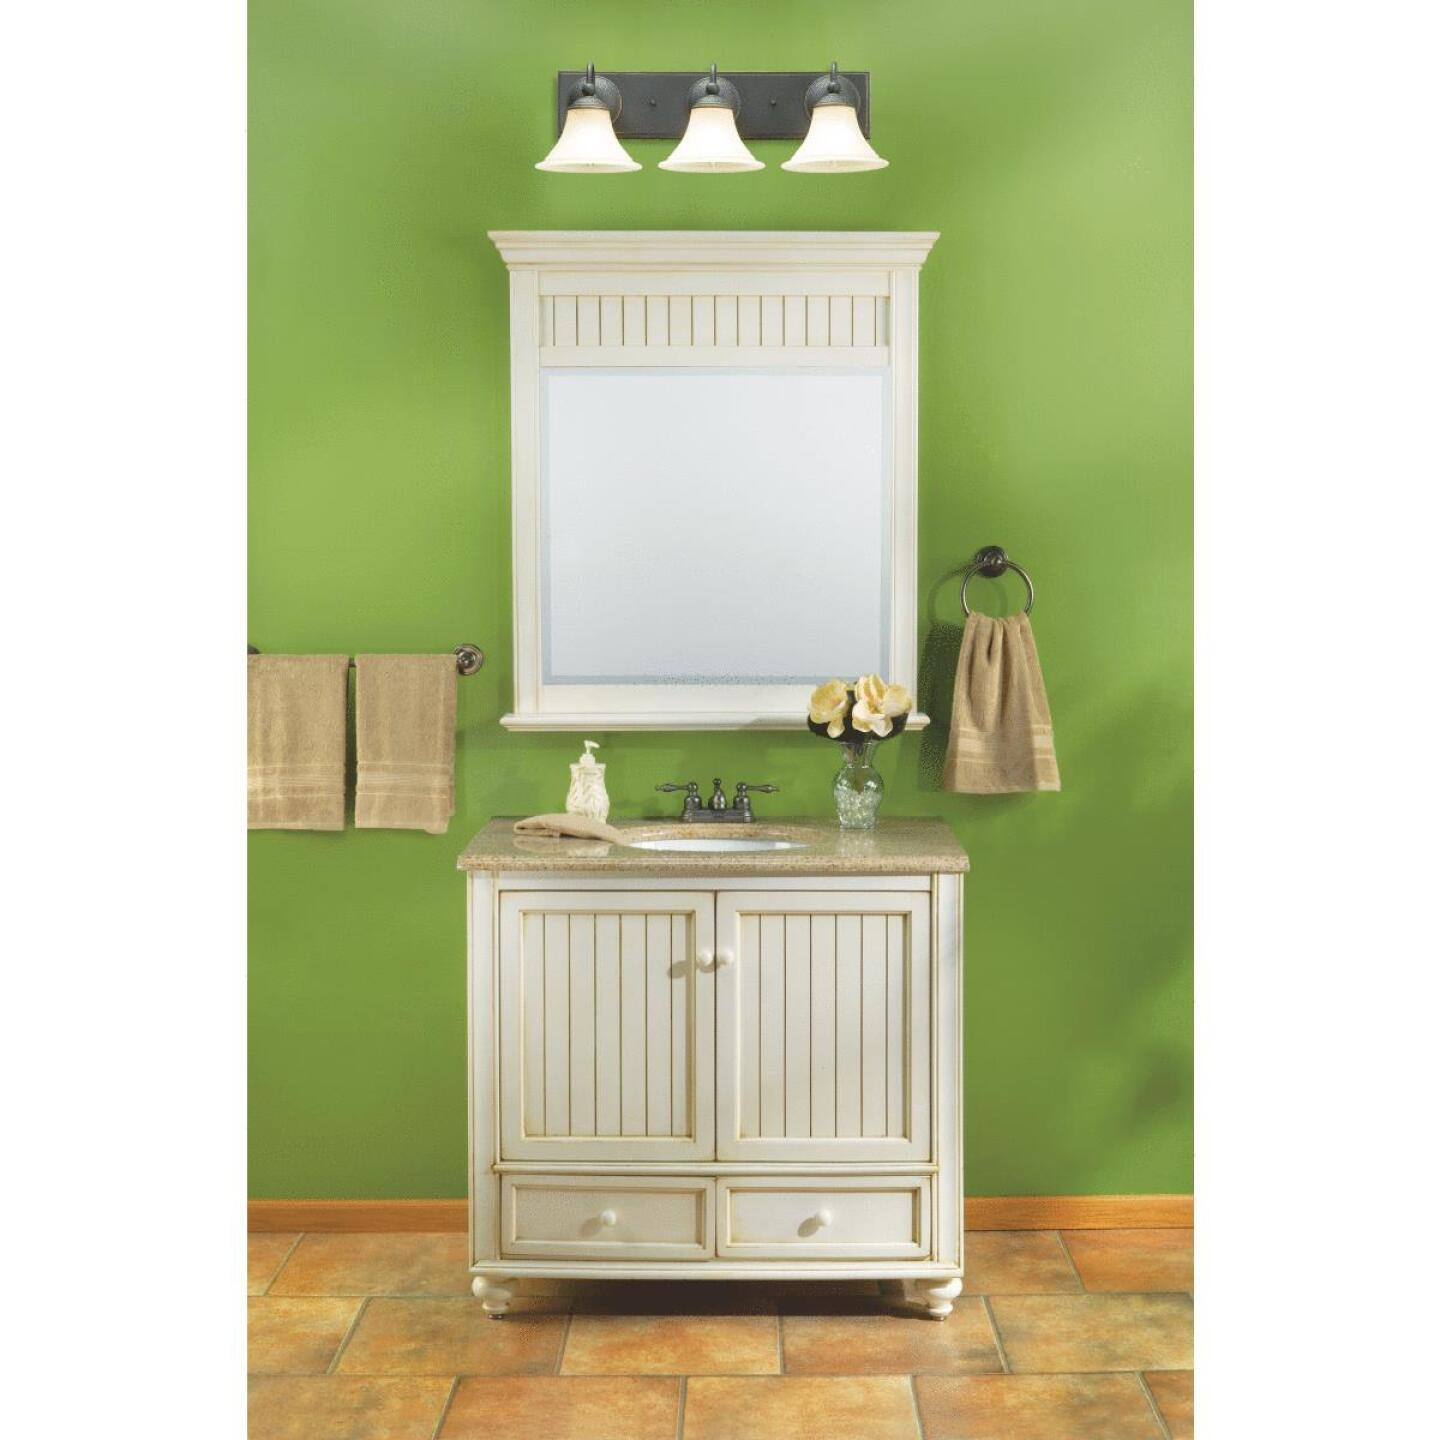 Sunny Wood Bristol Beach White 36 In. W x 34 In. H x 21 In. D Vanity Base, 2 Door/2 Drawer Image 6